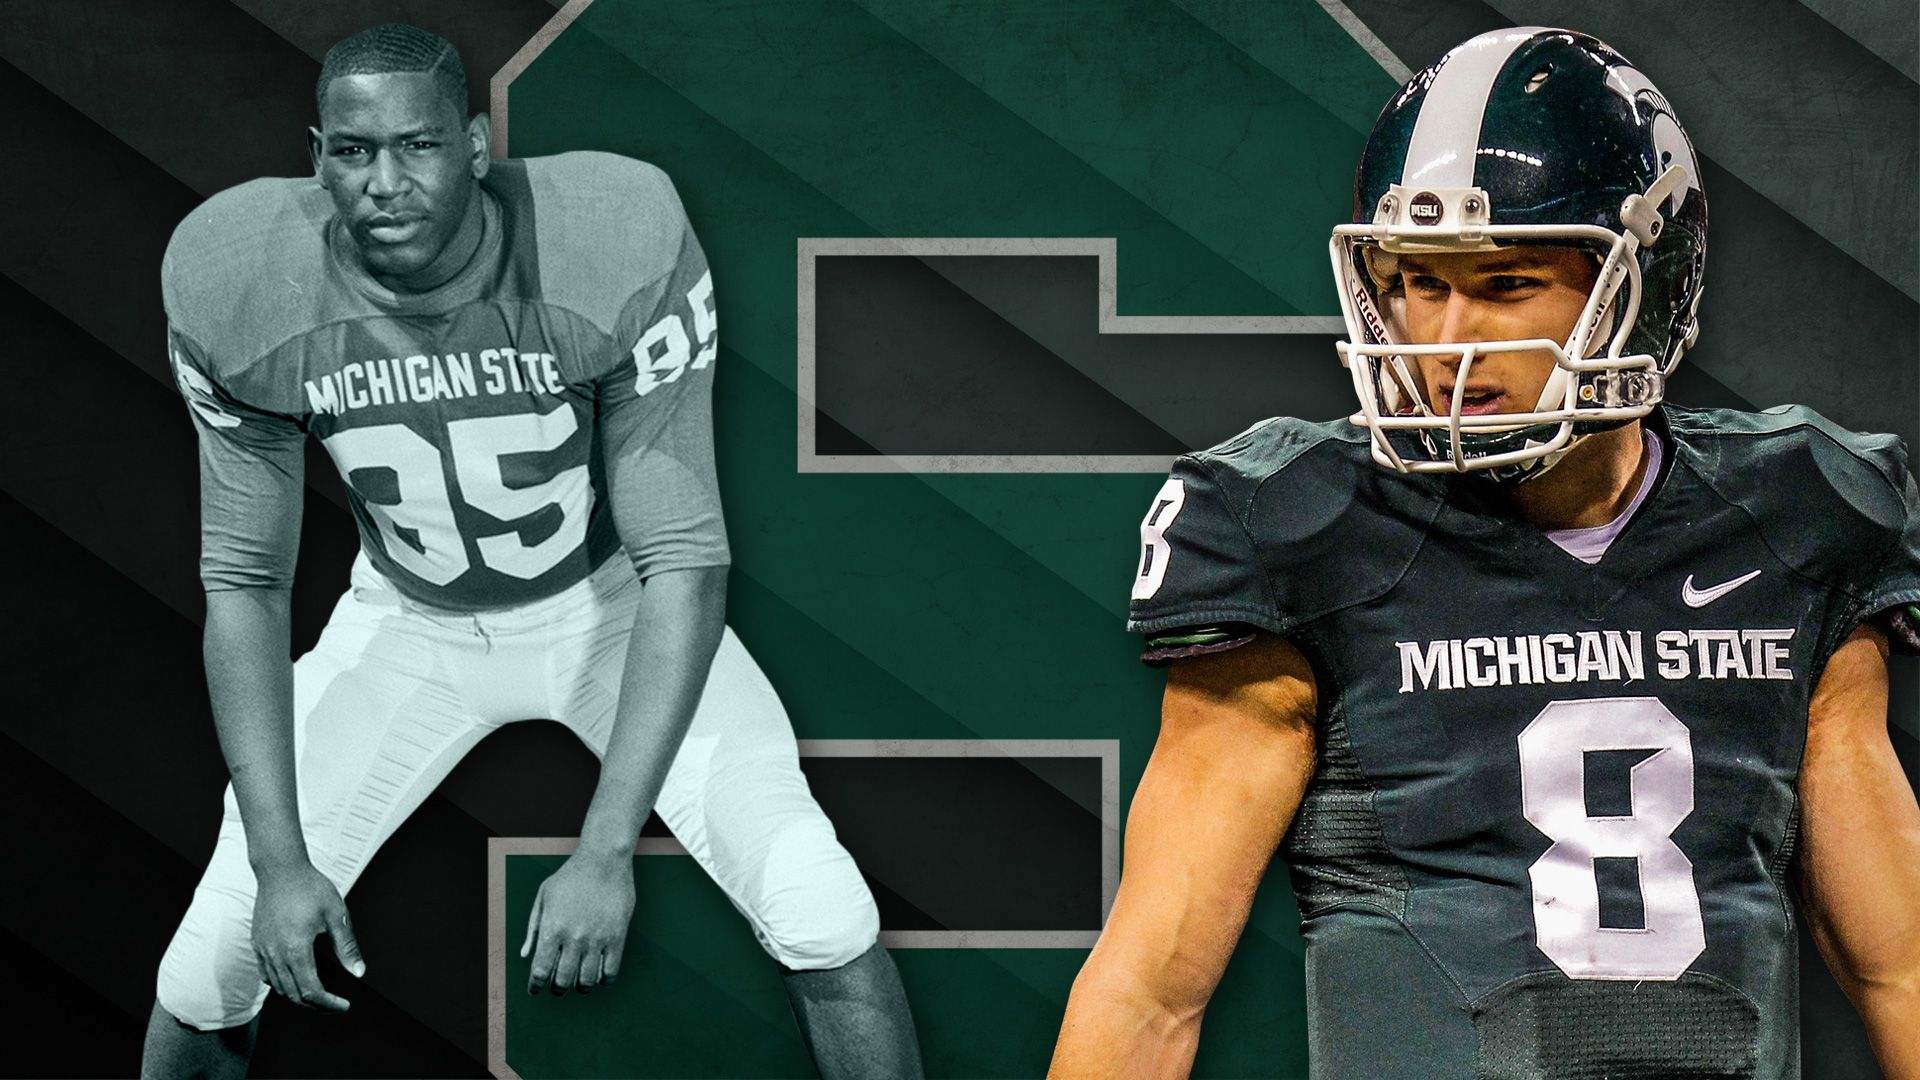 Michigan State computer wallpaper